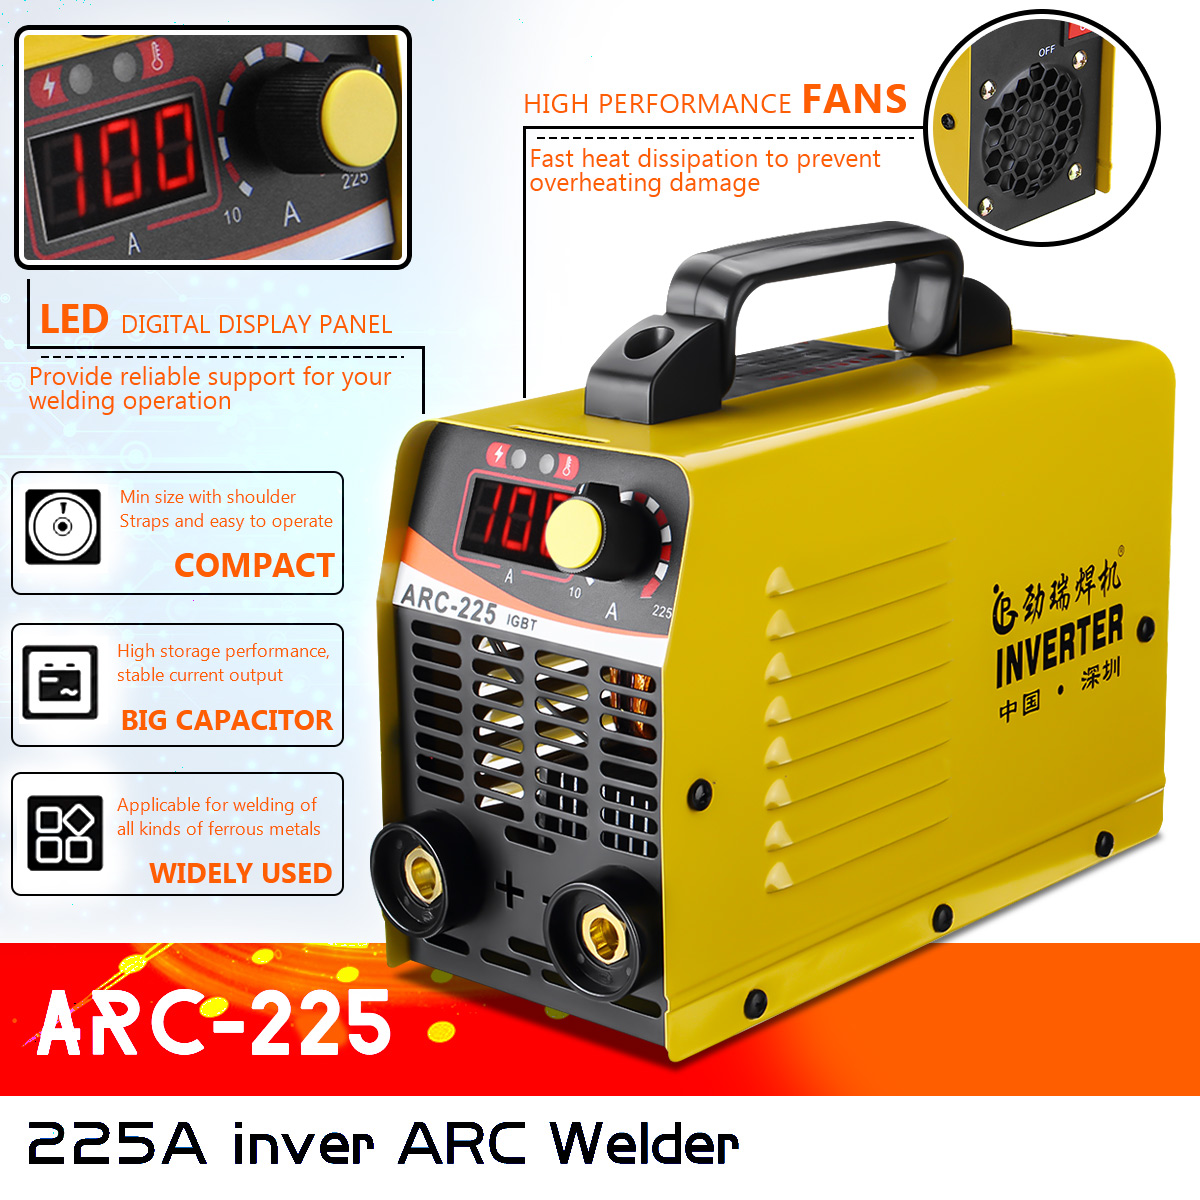 AUTOOL Dual Voltage Arc Inverter Welder 110V 220V IGBT 20-160A Handheld Intelligent Welding Machine Assembly Support 1//8 Inch Welding Rod with Goggles Overheat Protection Current Display